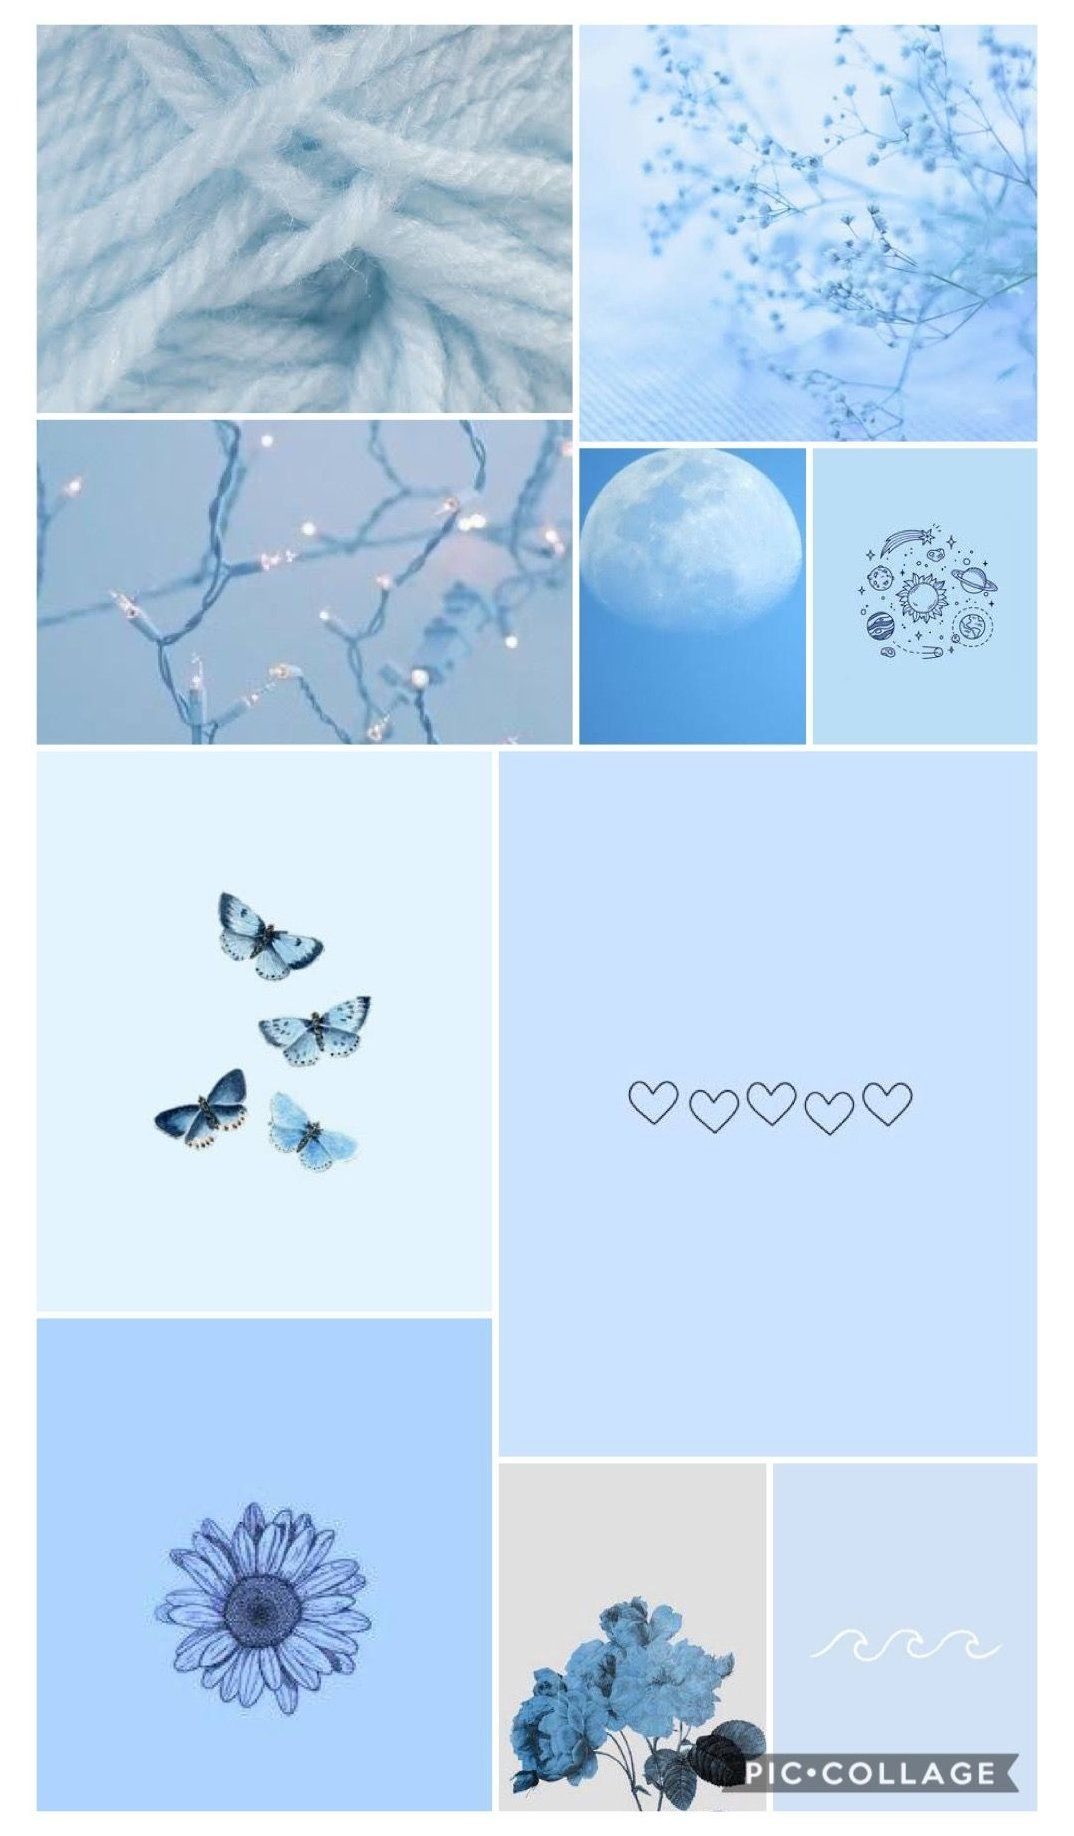 Baby Blue Aesthetic Wallpaper Baby Blue Aesthetic Wallpaper Babyblueaestheticwallpaper In 2021 Blue Background Wallpapers Baby Blue Wallpaper Baby Blue Aesthetic Iphone cute baby blue cute iphone